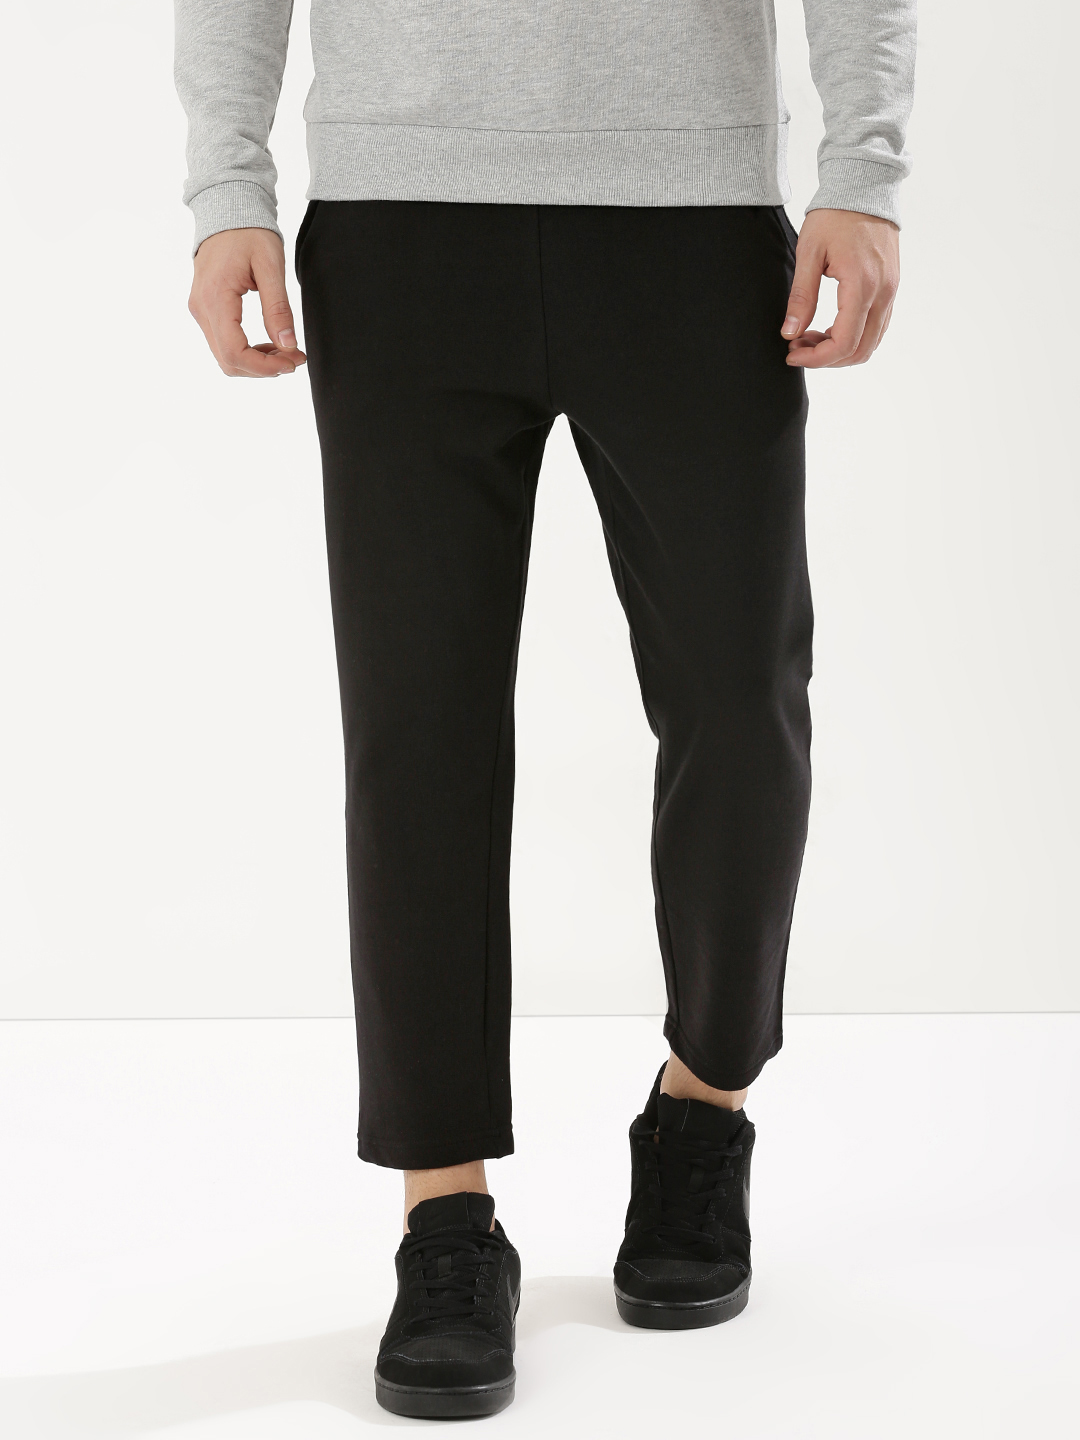 KOOVS Black Knitted Cropped Joggers With Zipper Detailing 1